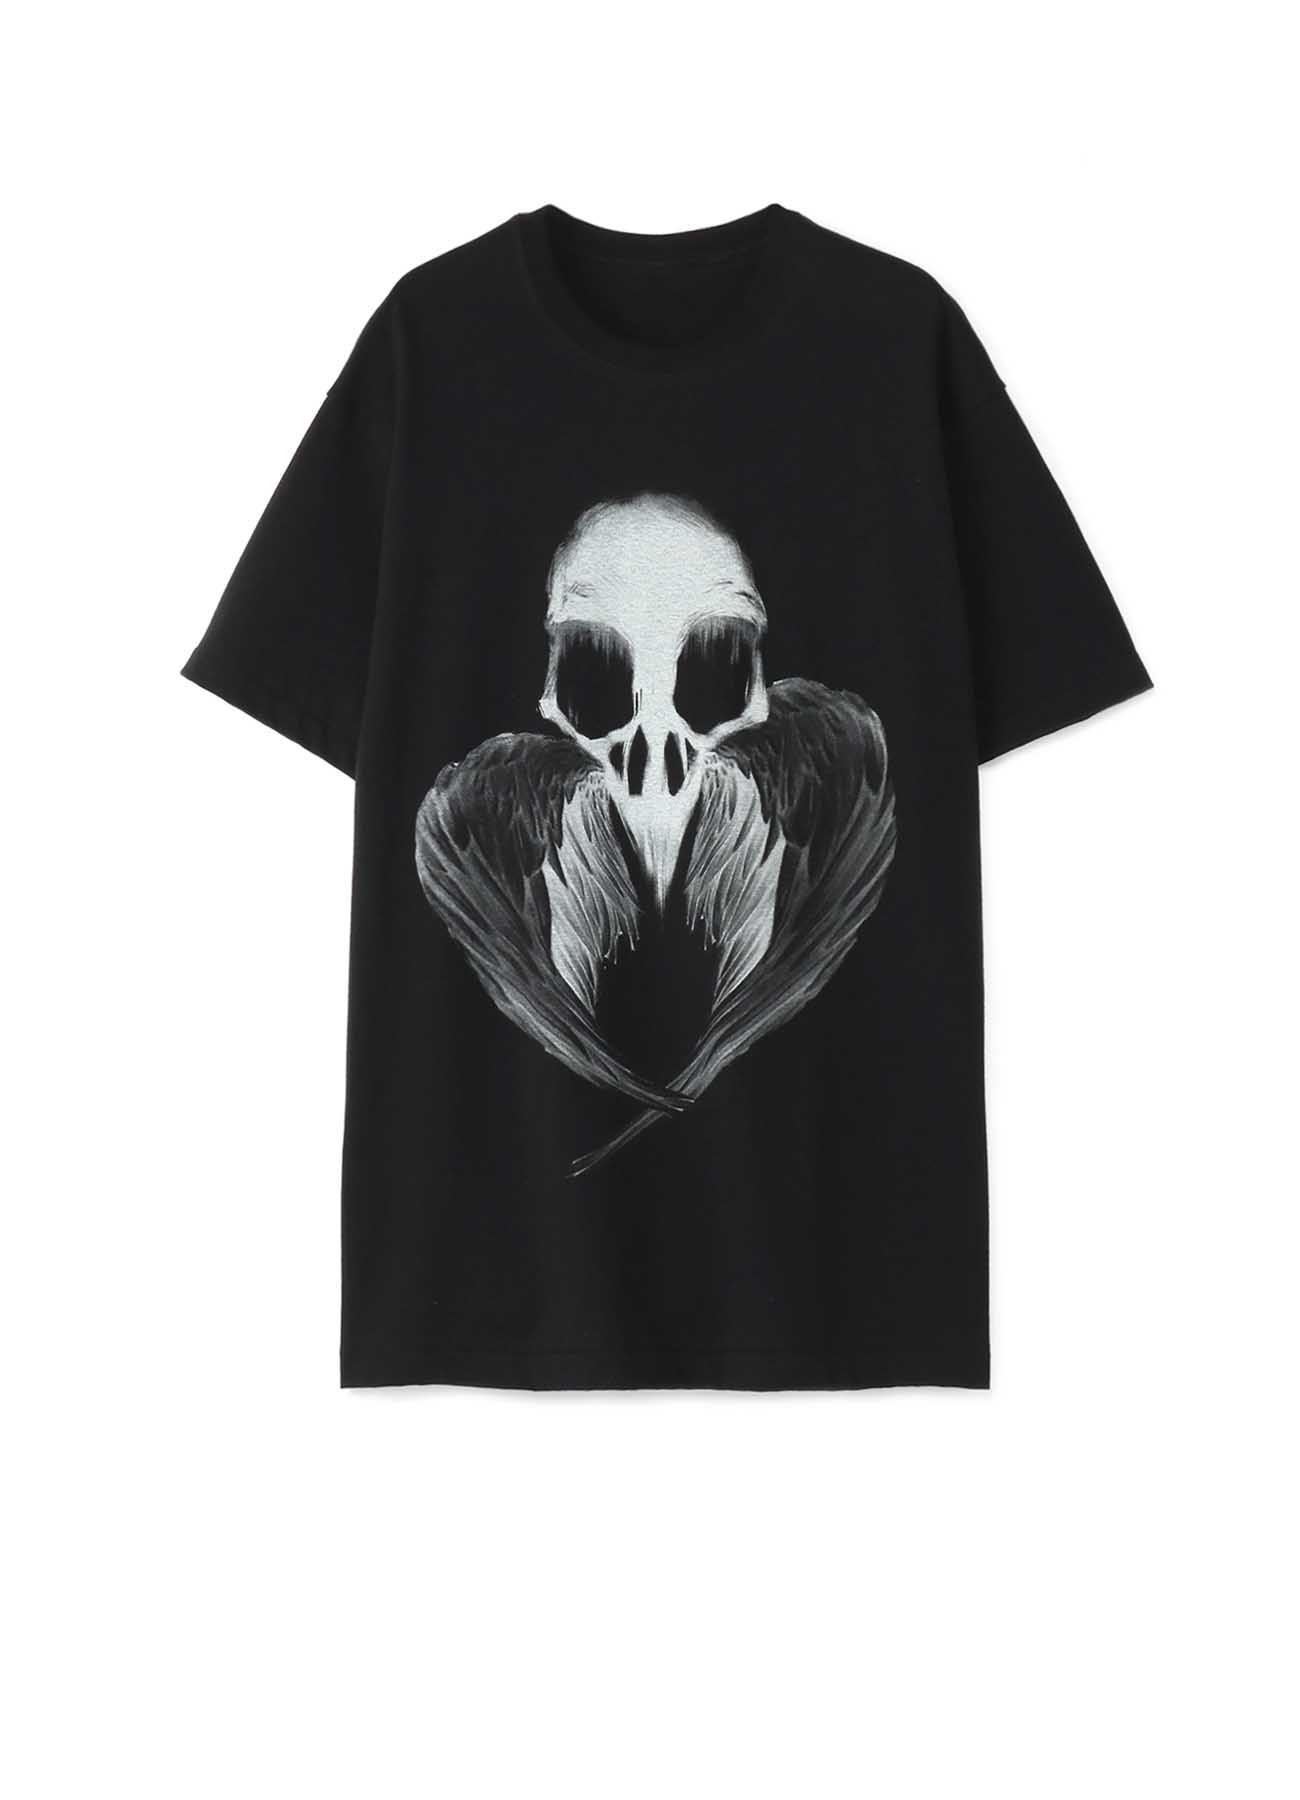 20/CottonJersey Crow Skull Feather T-Shirt